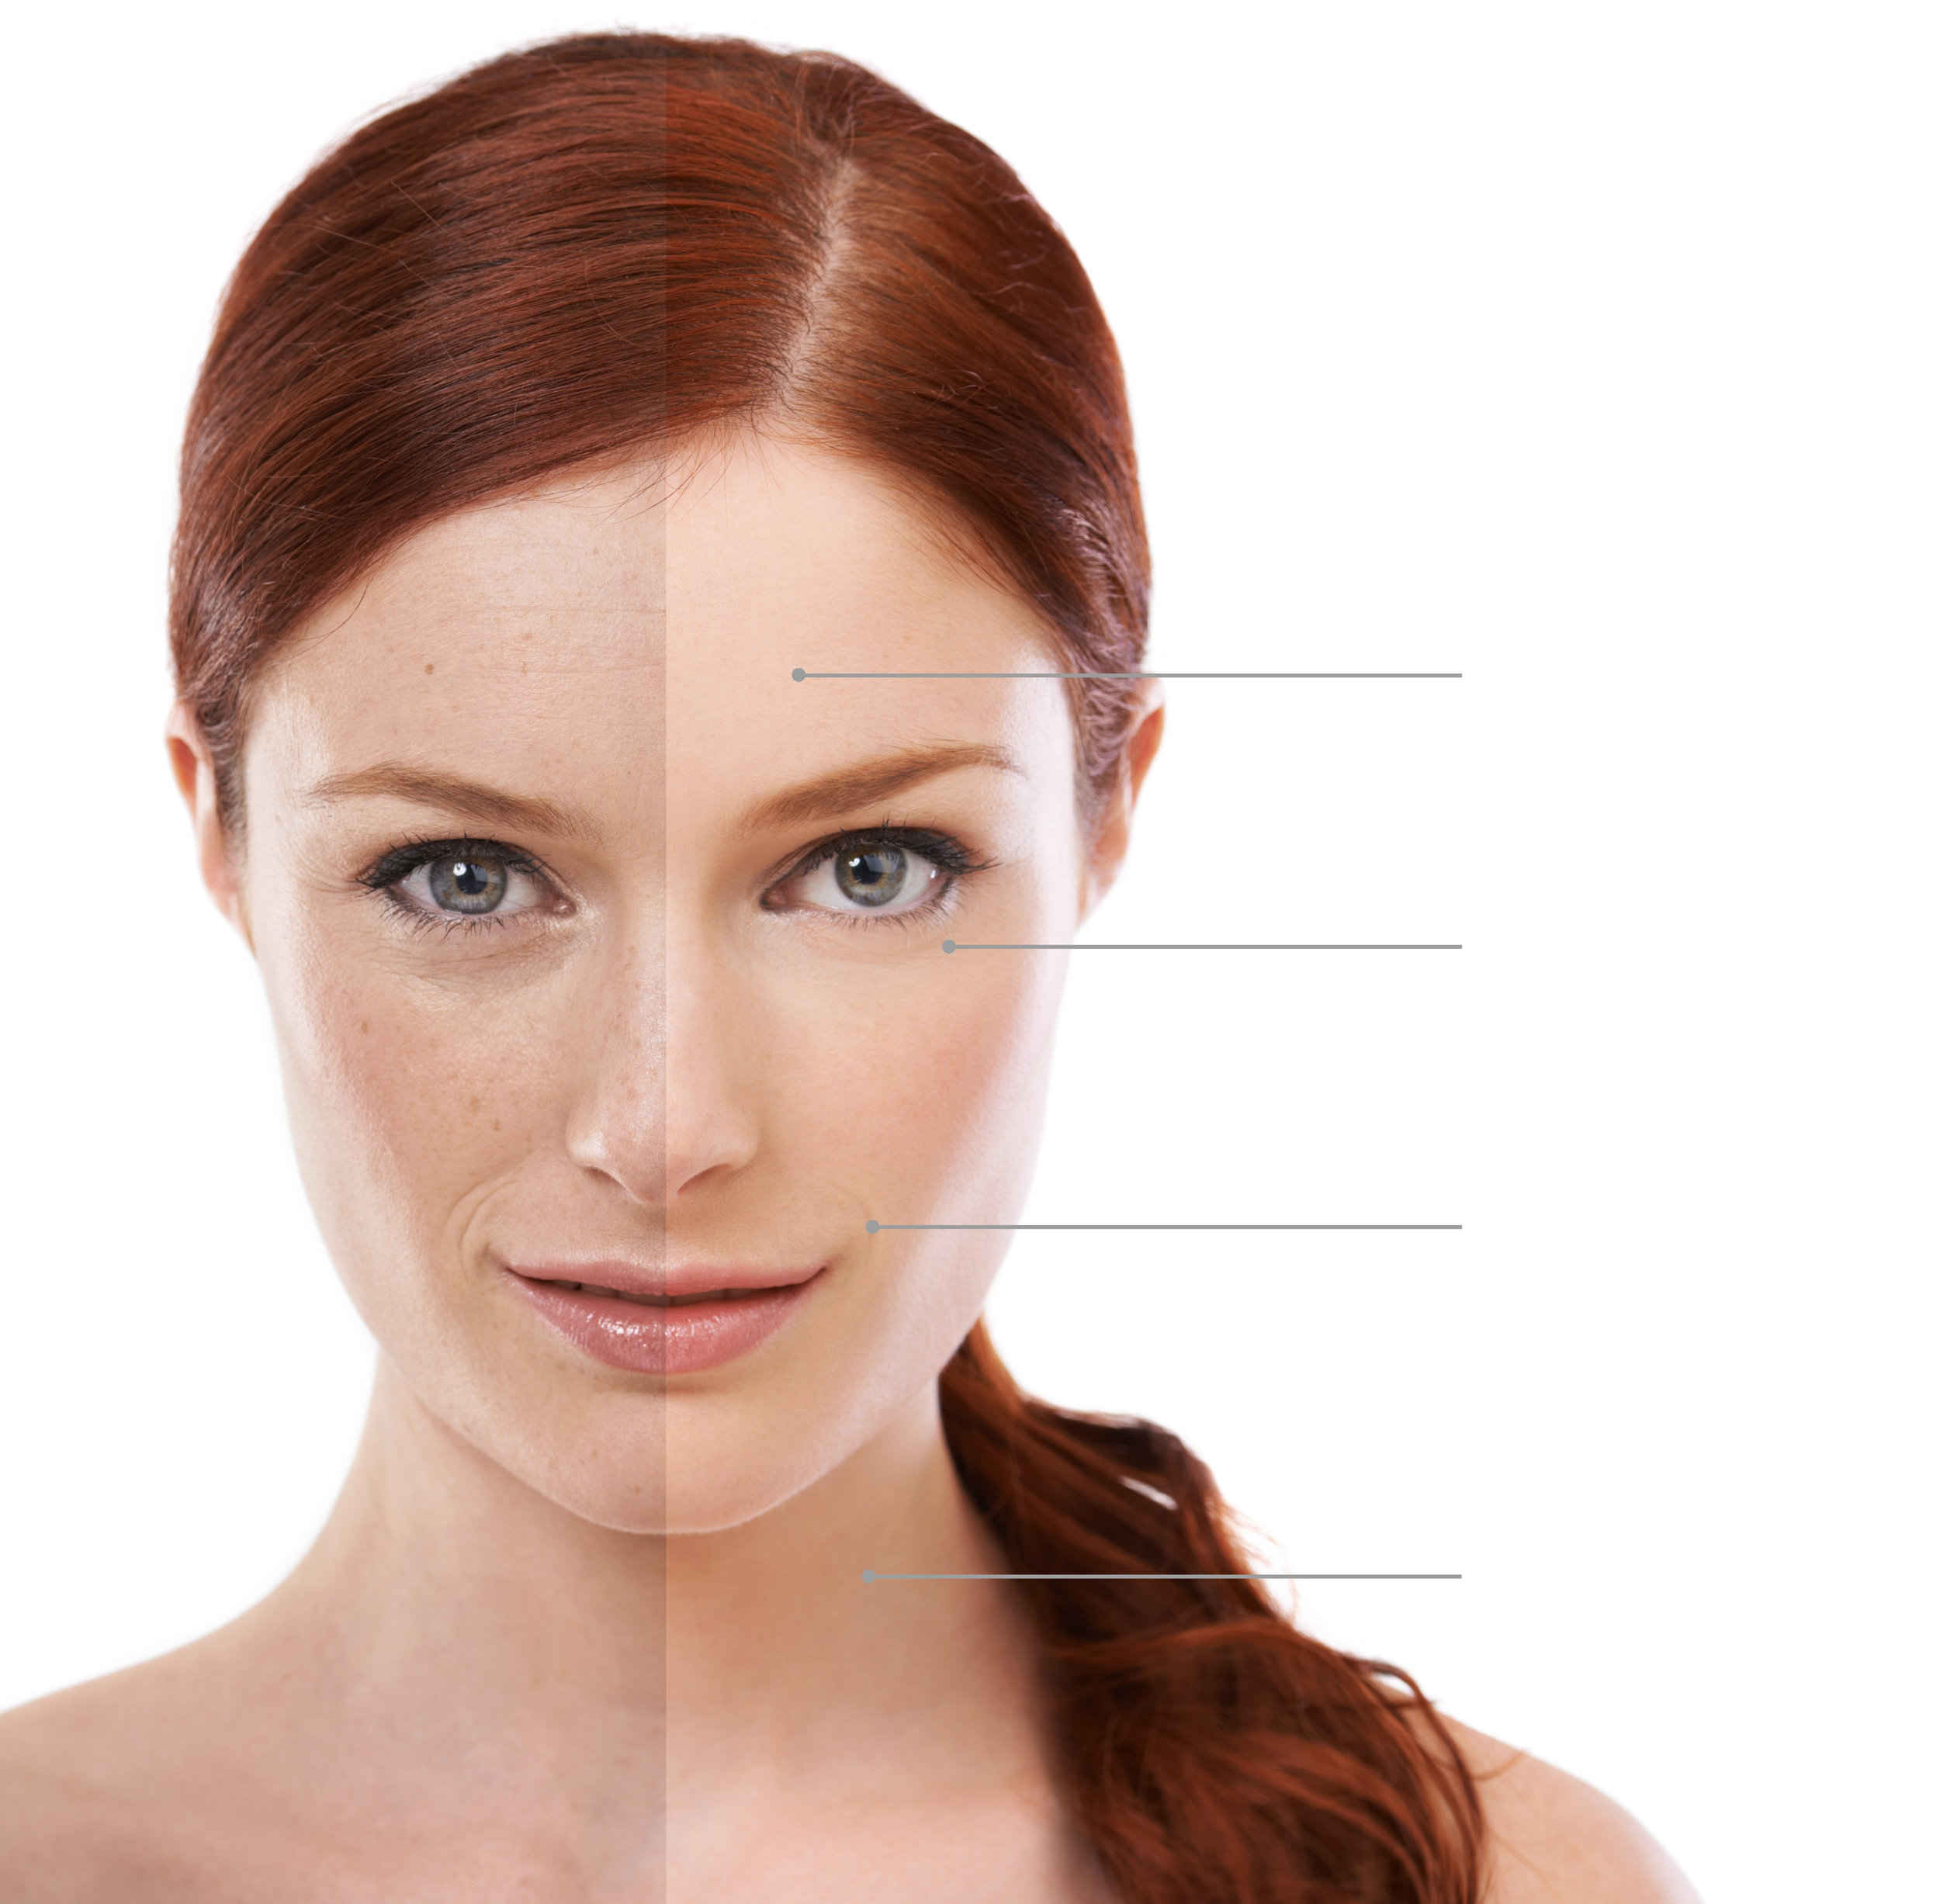 Pigmentation Correction - New York Laser Loft uses laser light to target and remove the pigment in sun spots, age spots, and freckles leaving the surrounding tissue unharmed. Common areas include the face, chest, arms, and hands.